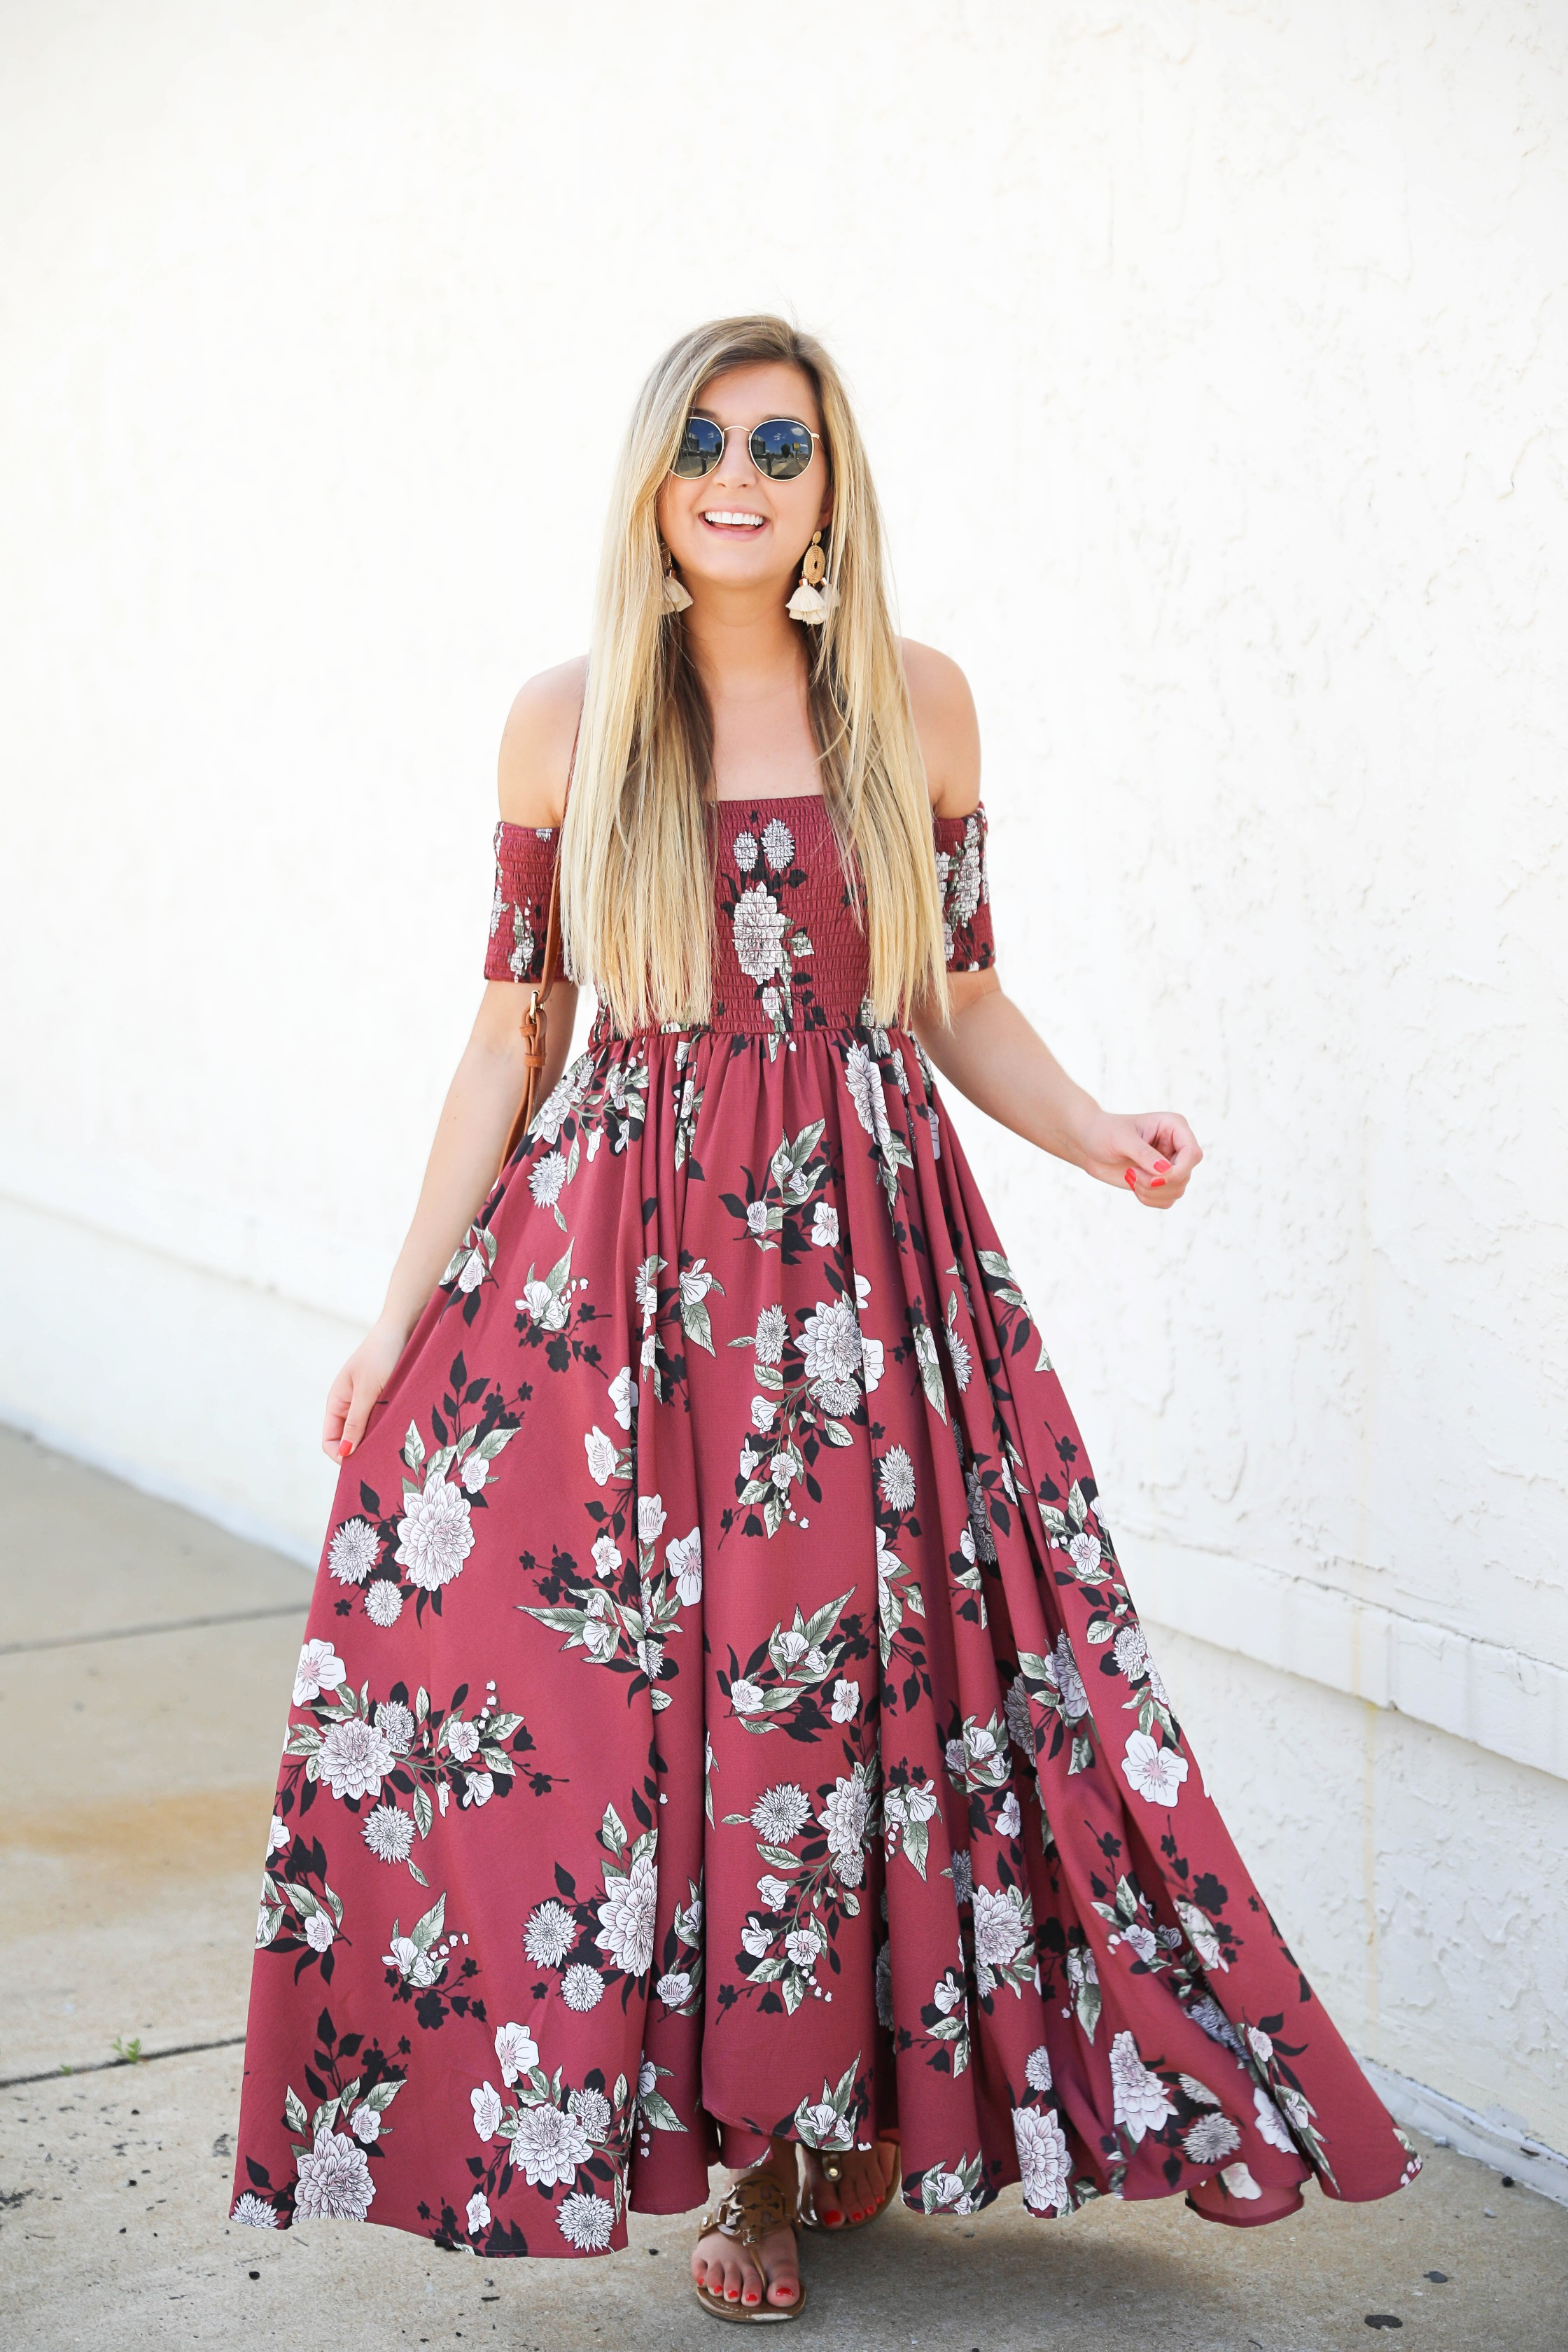 Mauve floral maxi dress from Showpo! This cute sundress is perfect for summer! I love off the shoulder dresses and it's so cute that it is maxi! Details on fashion blog daily dose of charm by lauren lindmark